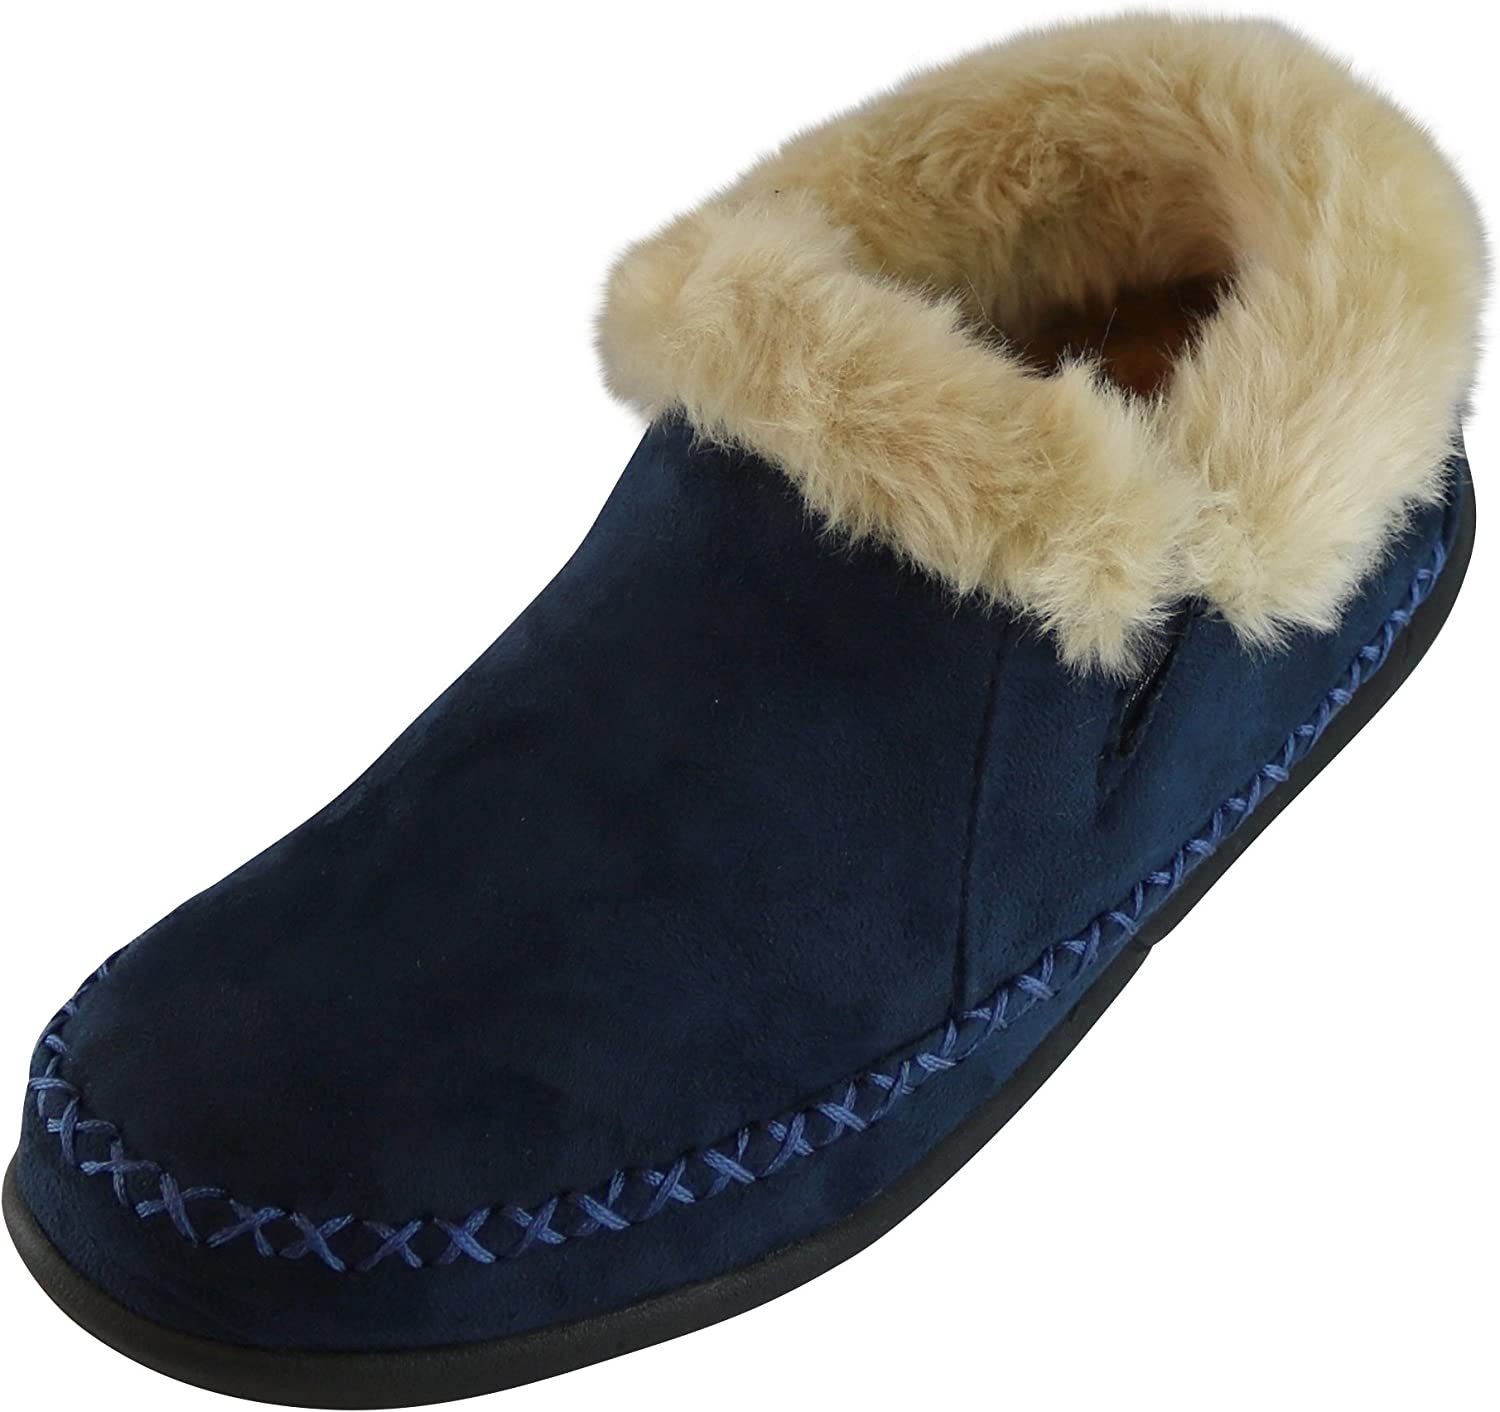 Tamarac by Slippers International Women's Shelby Lined Indoor Outdoor Slipper